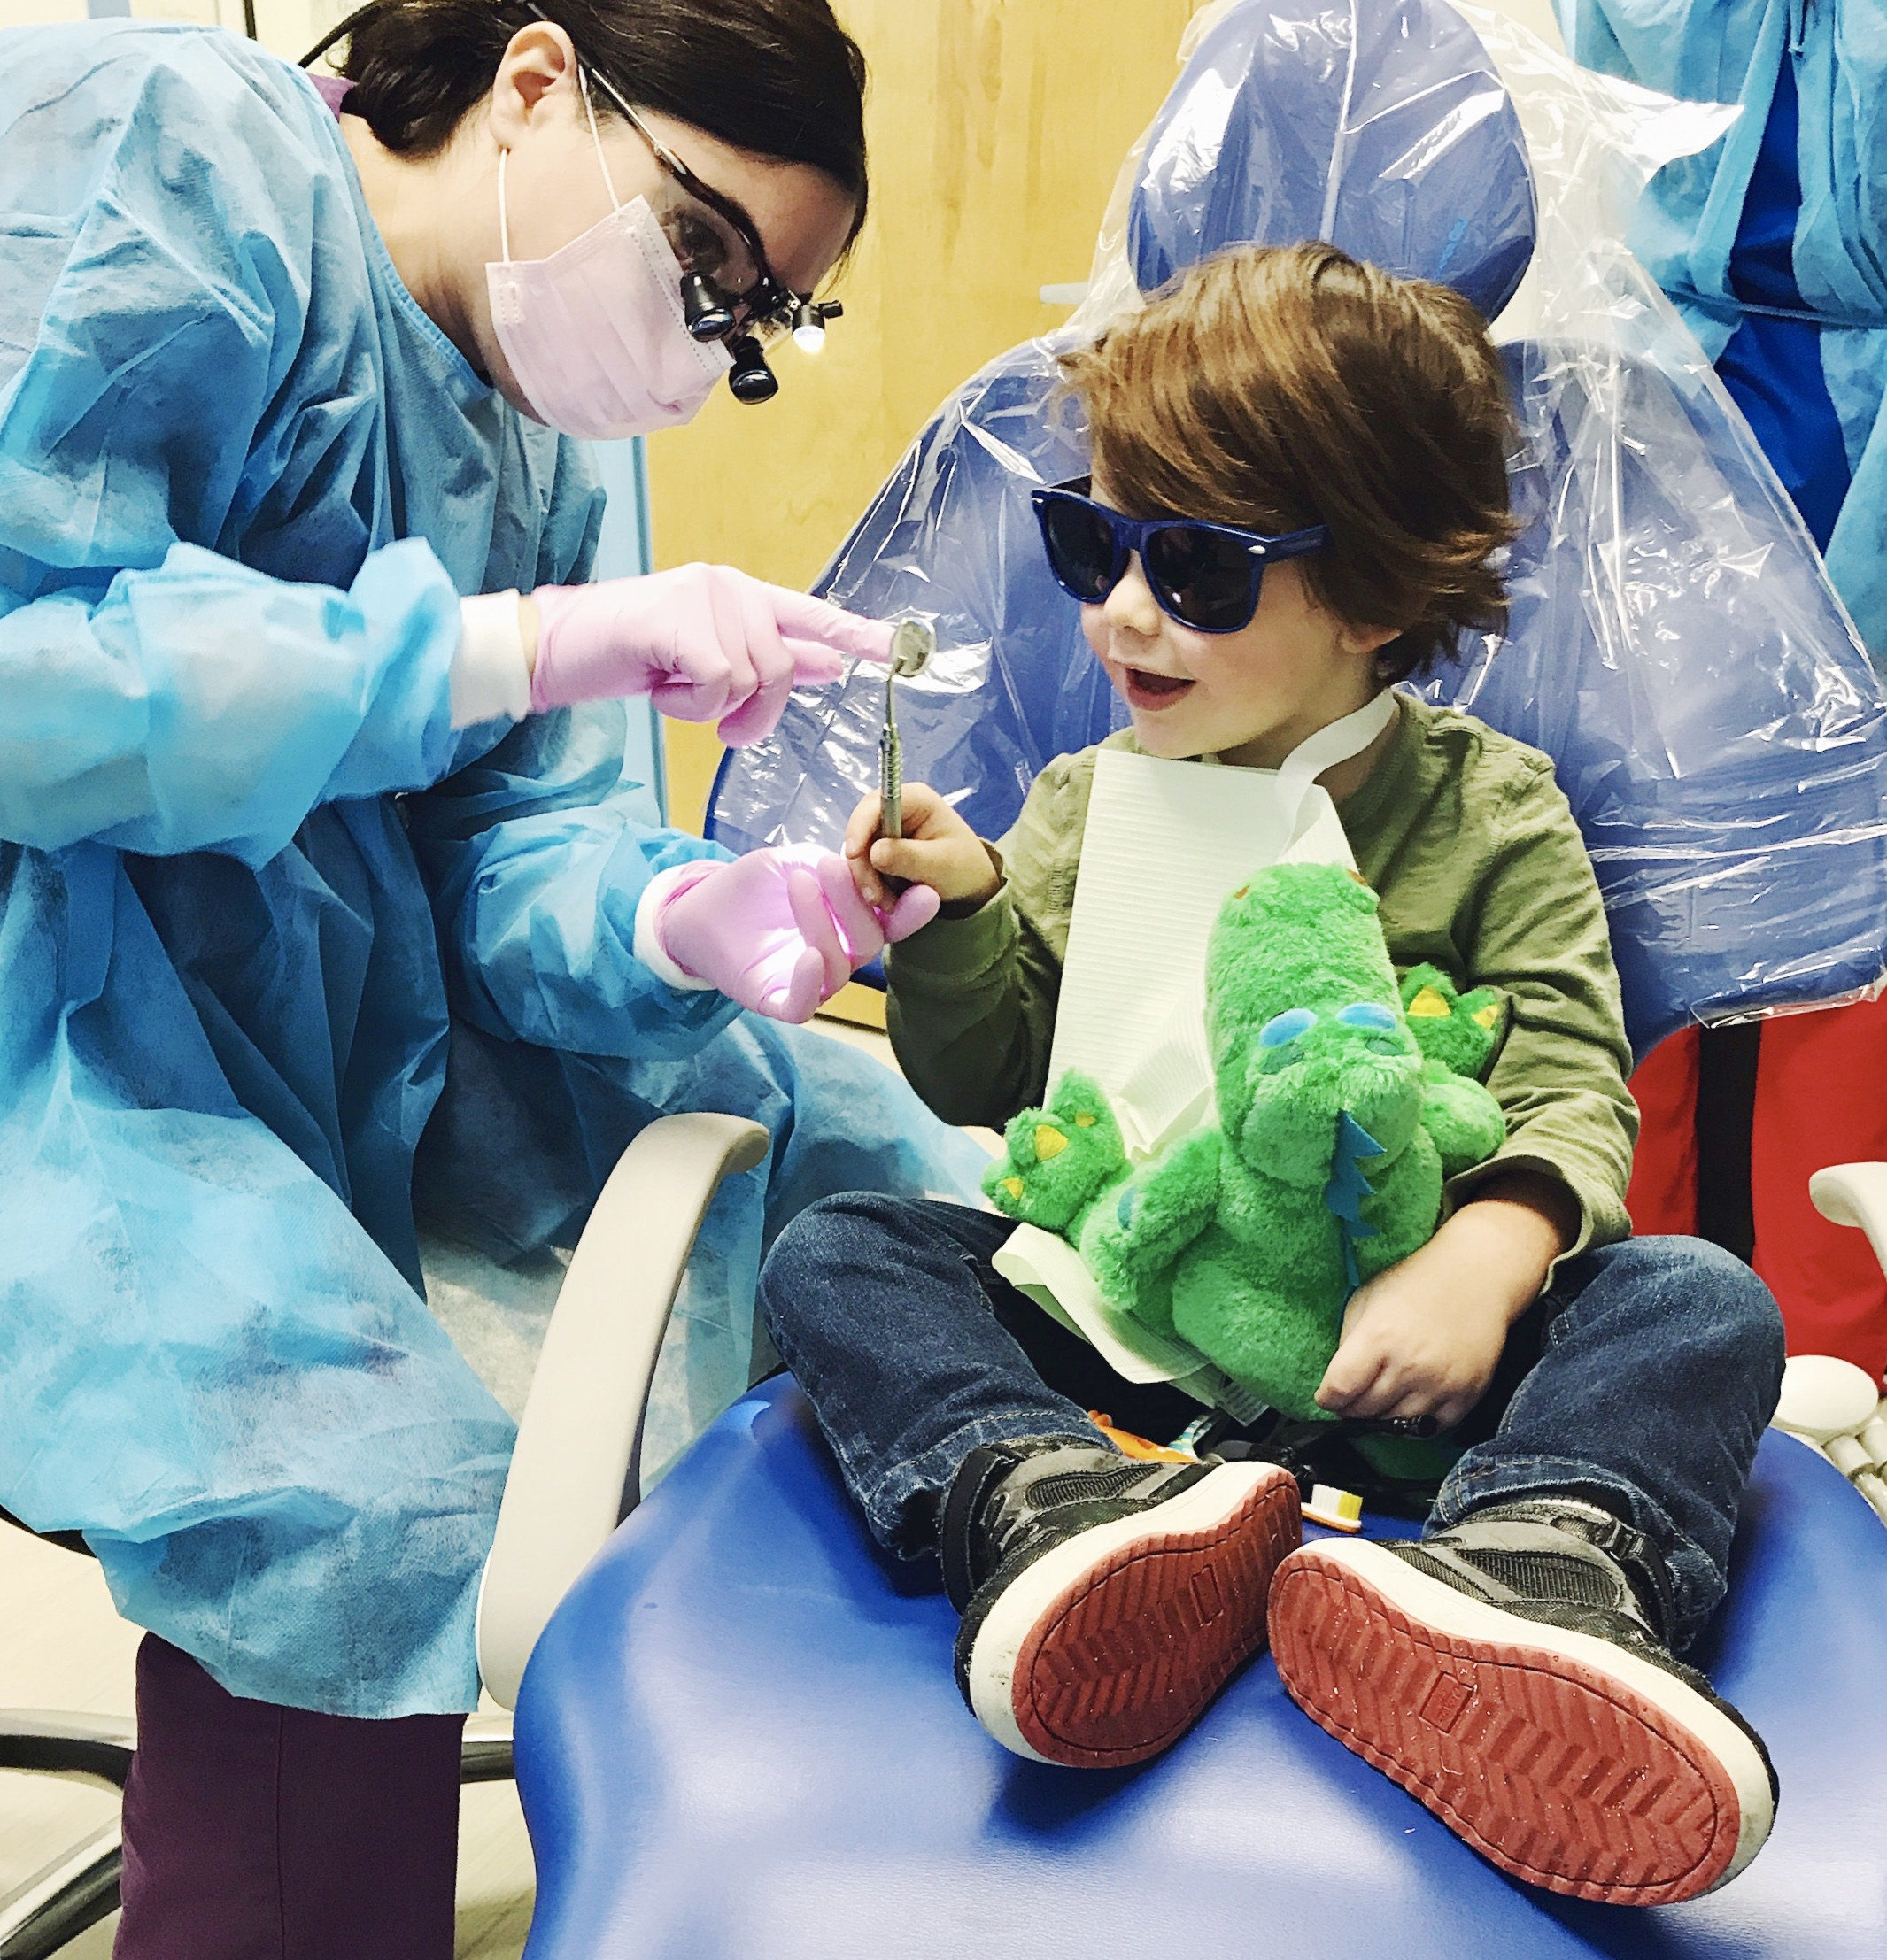 A young boy sits on a blue dental chair, wearing sunglasses and holding a stuffed alligator. He is smiling as Dr. Schtakleff shows him an instrument that she is using.